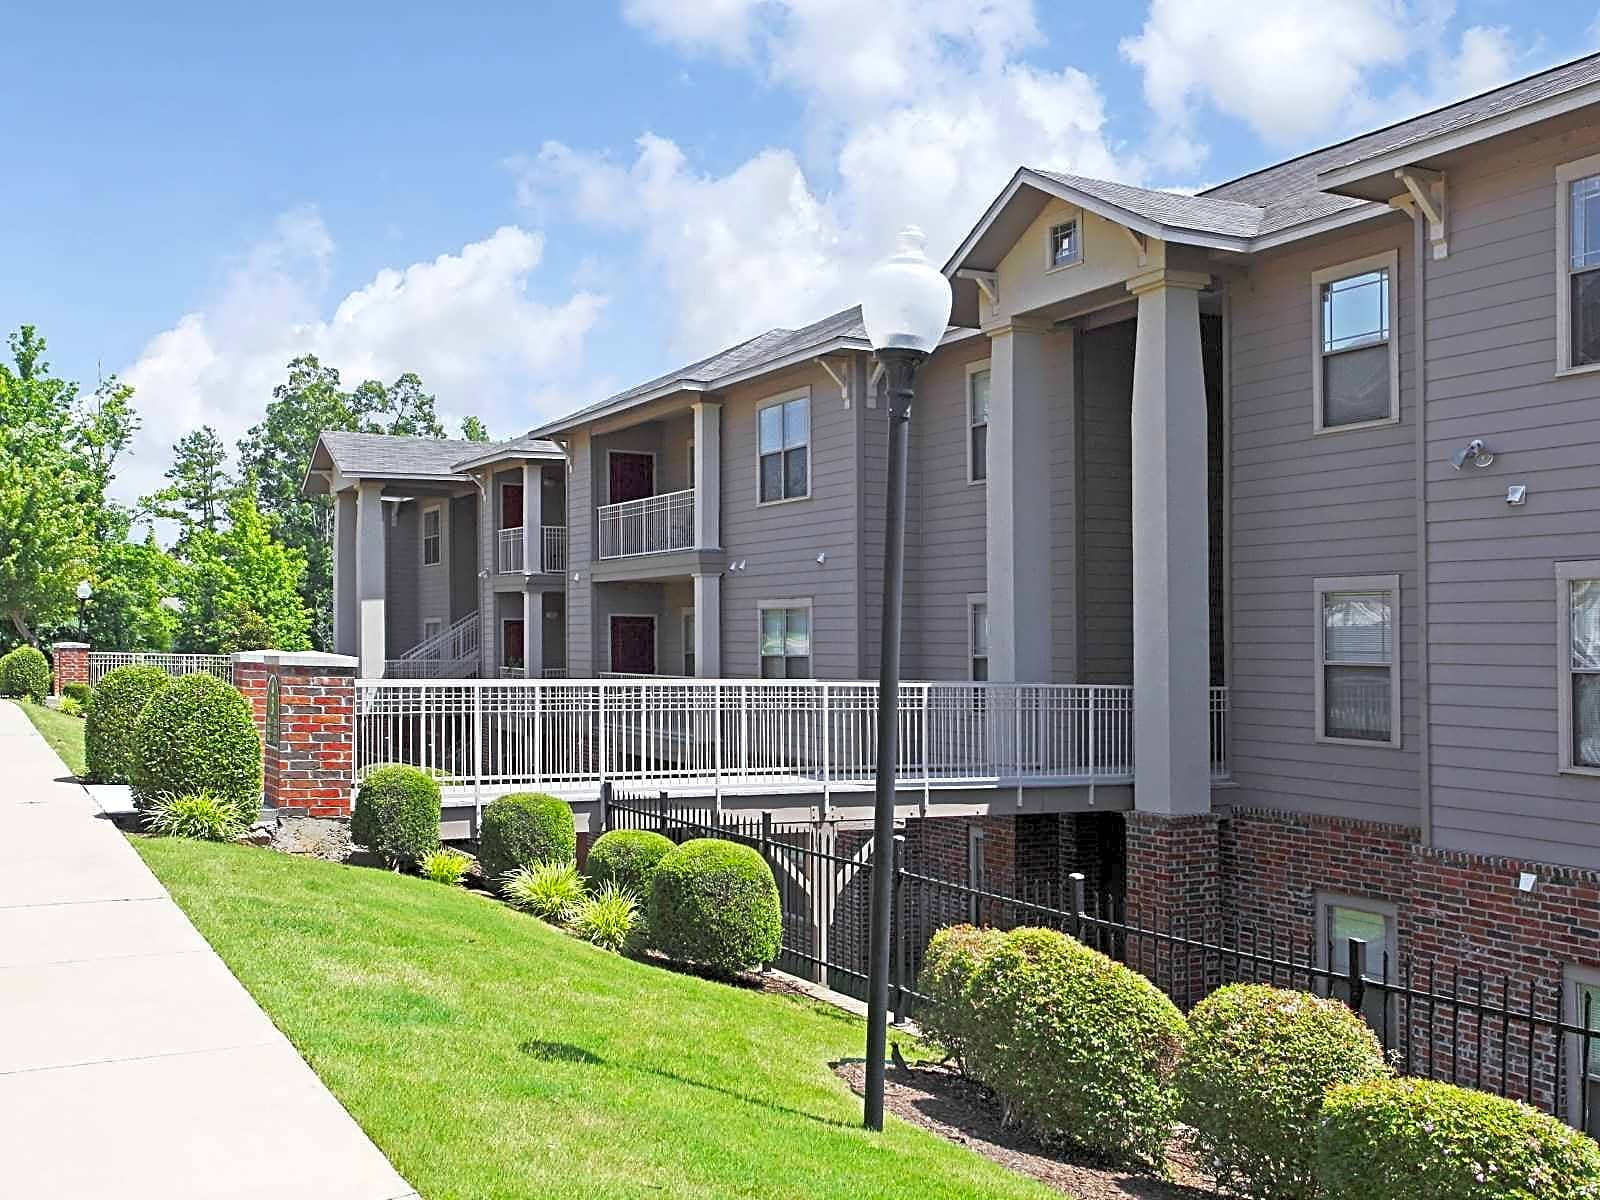 Apartments and houses for rent near me in little rock ar for 3 bedroom apartments in little rock ar